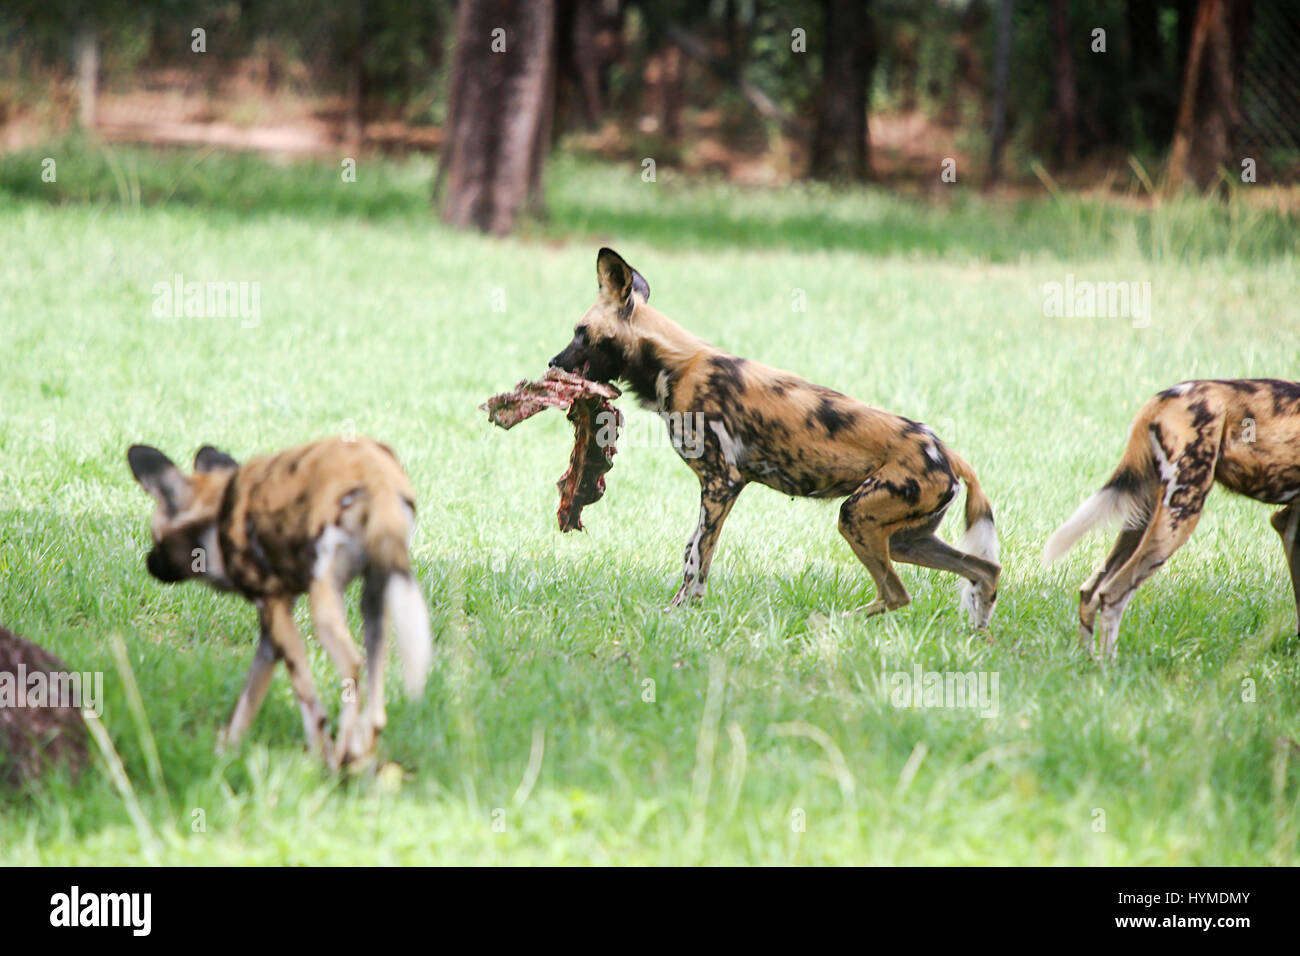 African wild dogs from Taronga Western Plains Zoo in Dubbo. Stock Photo